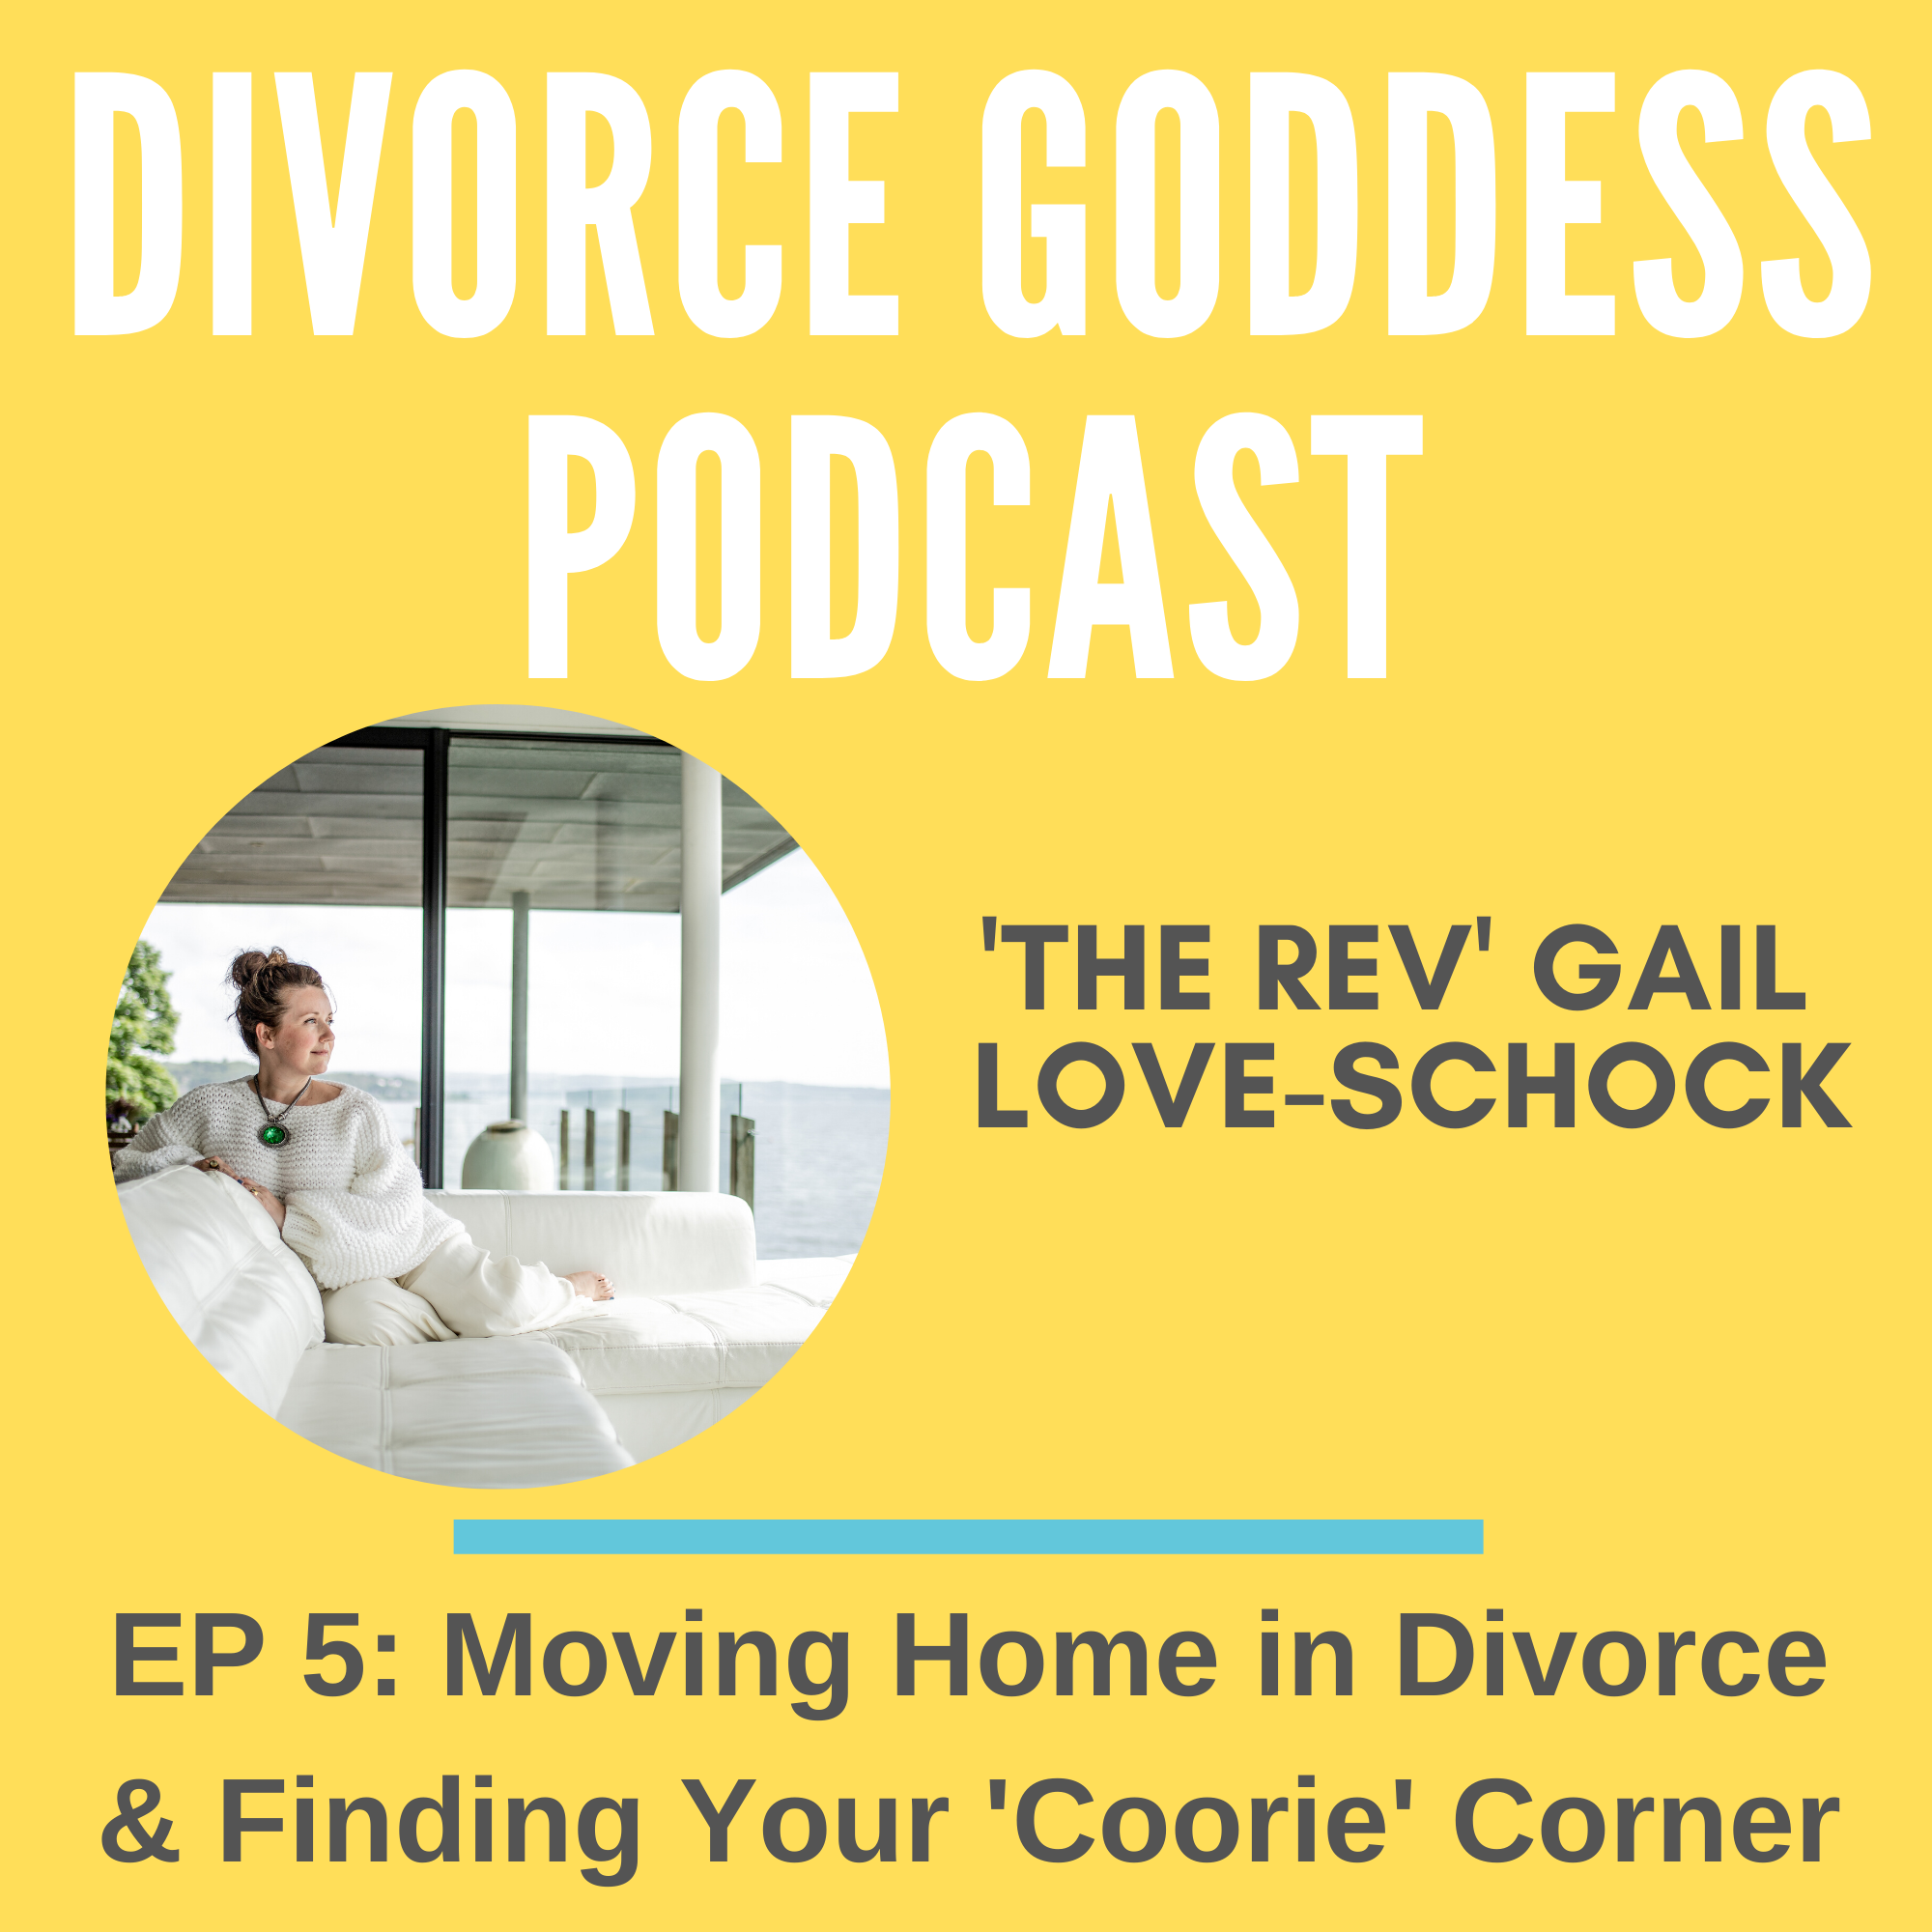 Divorce Goddess Podcast - EP 5 - Moving Home in Divorce and Finding Your 'Coorie' Corner